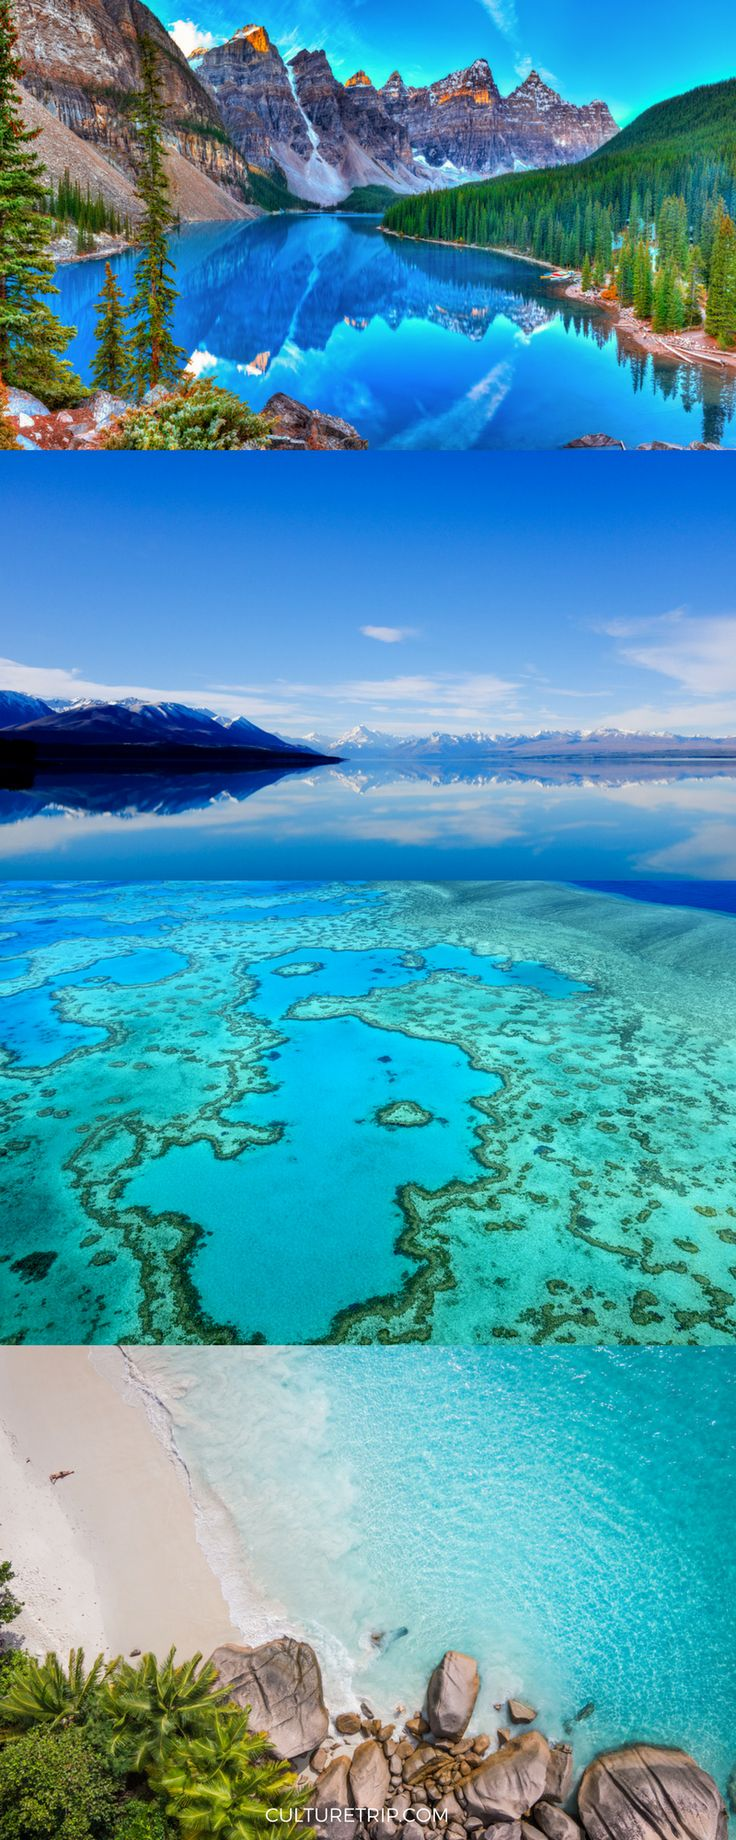 You Have to Swim in These Dazzling Crystal Clear Waters This Summer   Pinterest:@theculturetrip